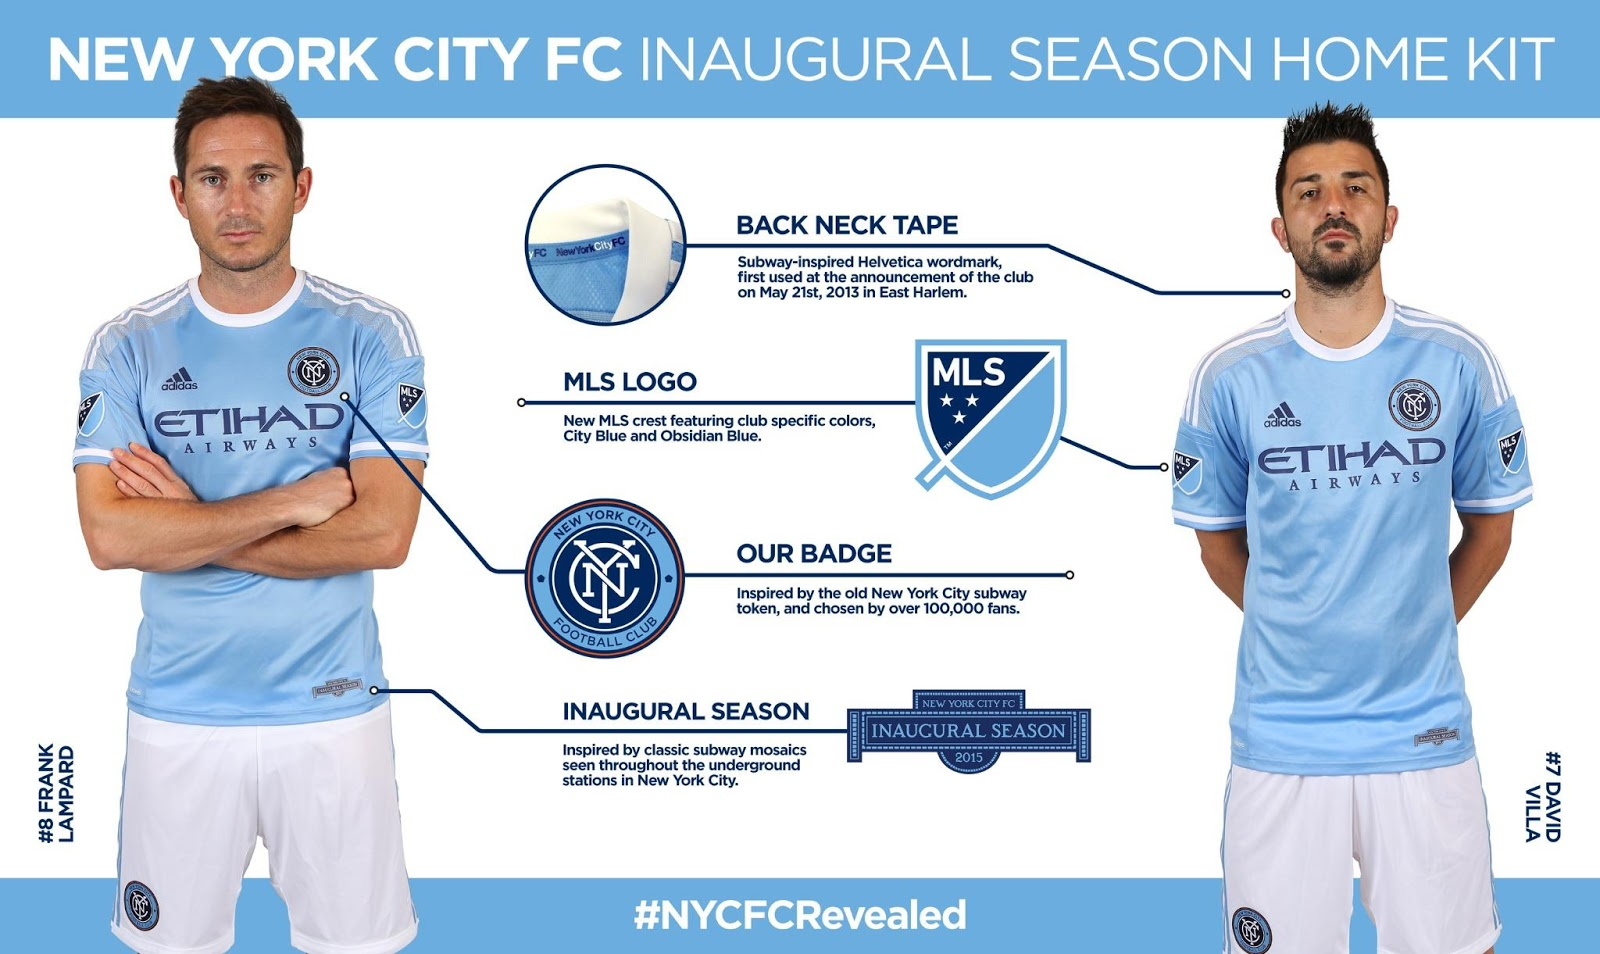 New York City FC 2015 MLS Home and Away Kits ReleasedScouting report: FRANCE2018-19 Kit Overview - All Leaked & Official 18-19 Shirts + InfoUltra Limited Nike Mercurial Superfly CR7 Chapter 6 Edição Especial Boots RevealedAdidas Telstar 18 'Mechta' 2018 World Cup Knock-Out Stage Ball RevealedInter 18-19 Away Kit LeakedOfficial Pictures: AS Roma 18-19 Away Kit LeakedOFFICIAL Pictures - 'Electricity' Adidas Predator Accelerator Remake Boots LeakedExclusive: Paris Saint-Germain 18-19 Away Kit LeakedTotal 90 Inspired? New Nike 2019-20 Teamwear Kit Leaked